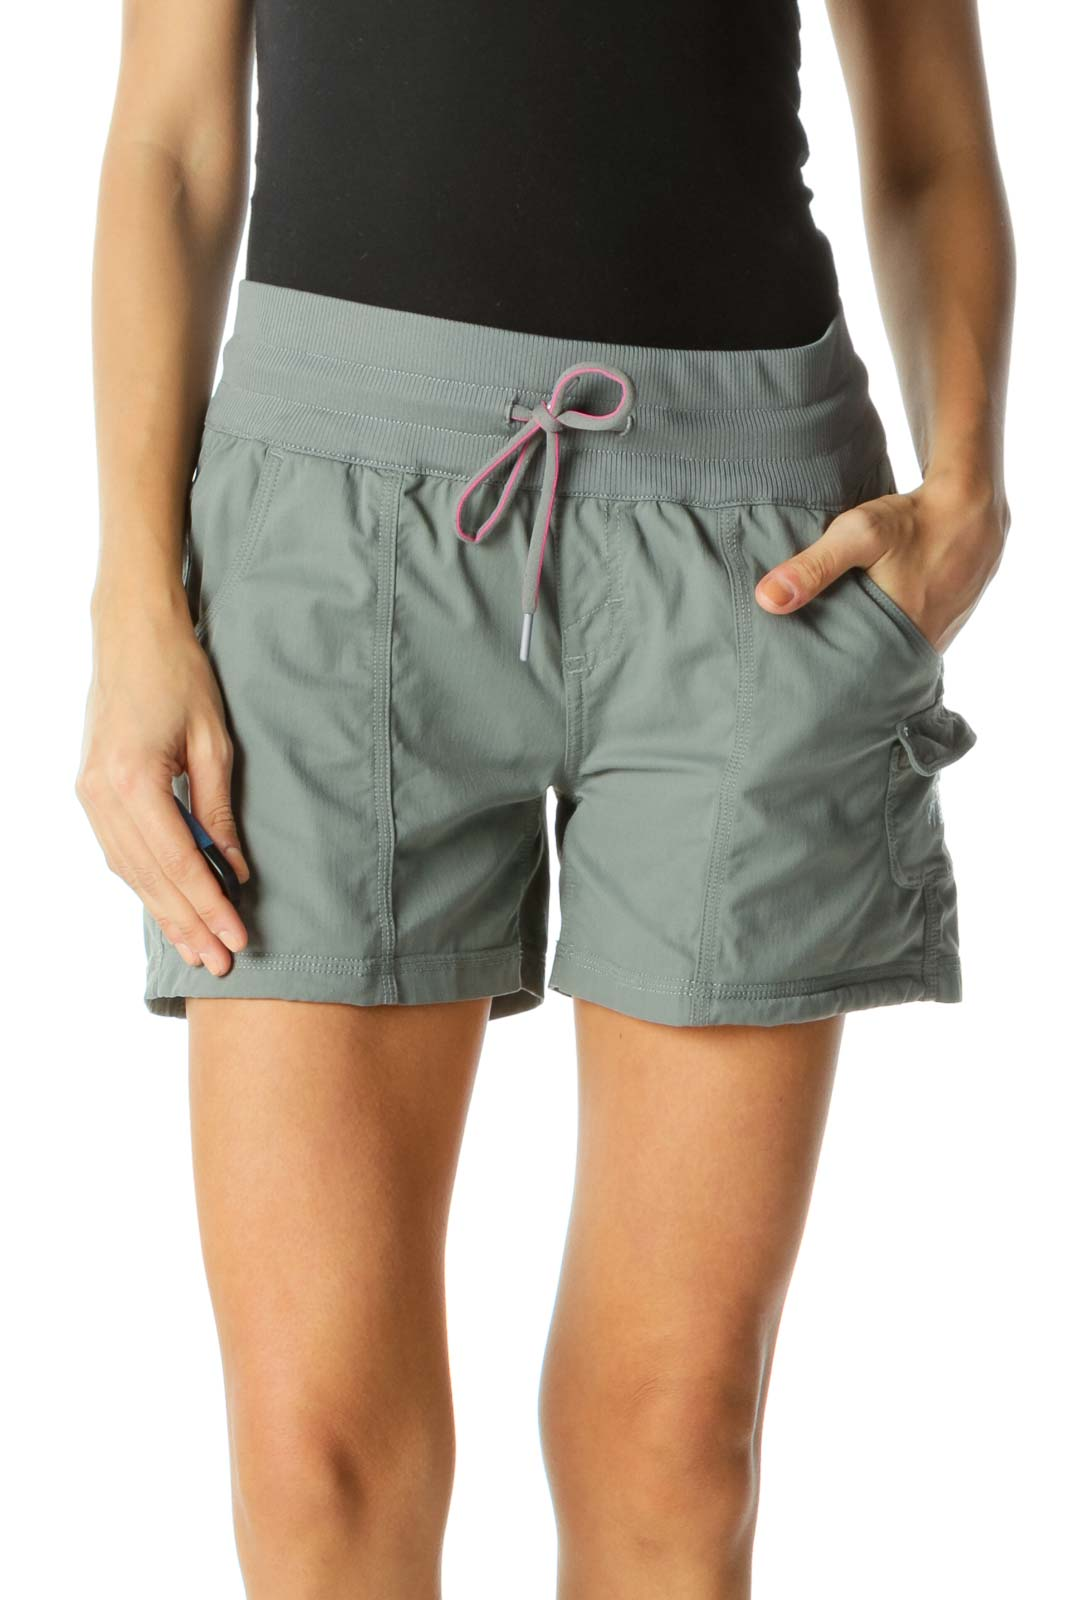 Gray Hot Pink-Drawstring Detail Pocketed Stretch Active Shorts